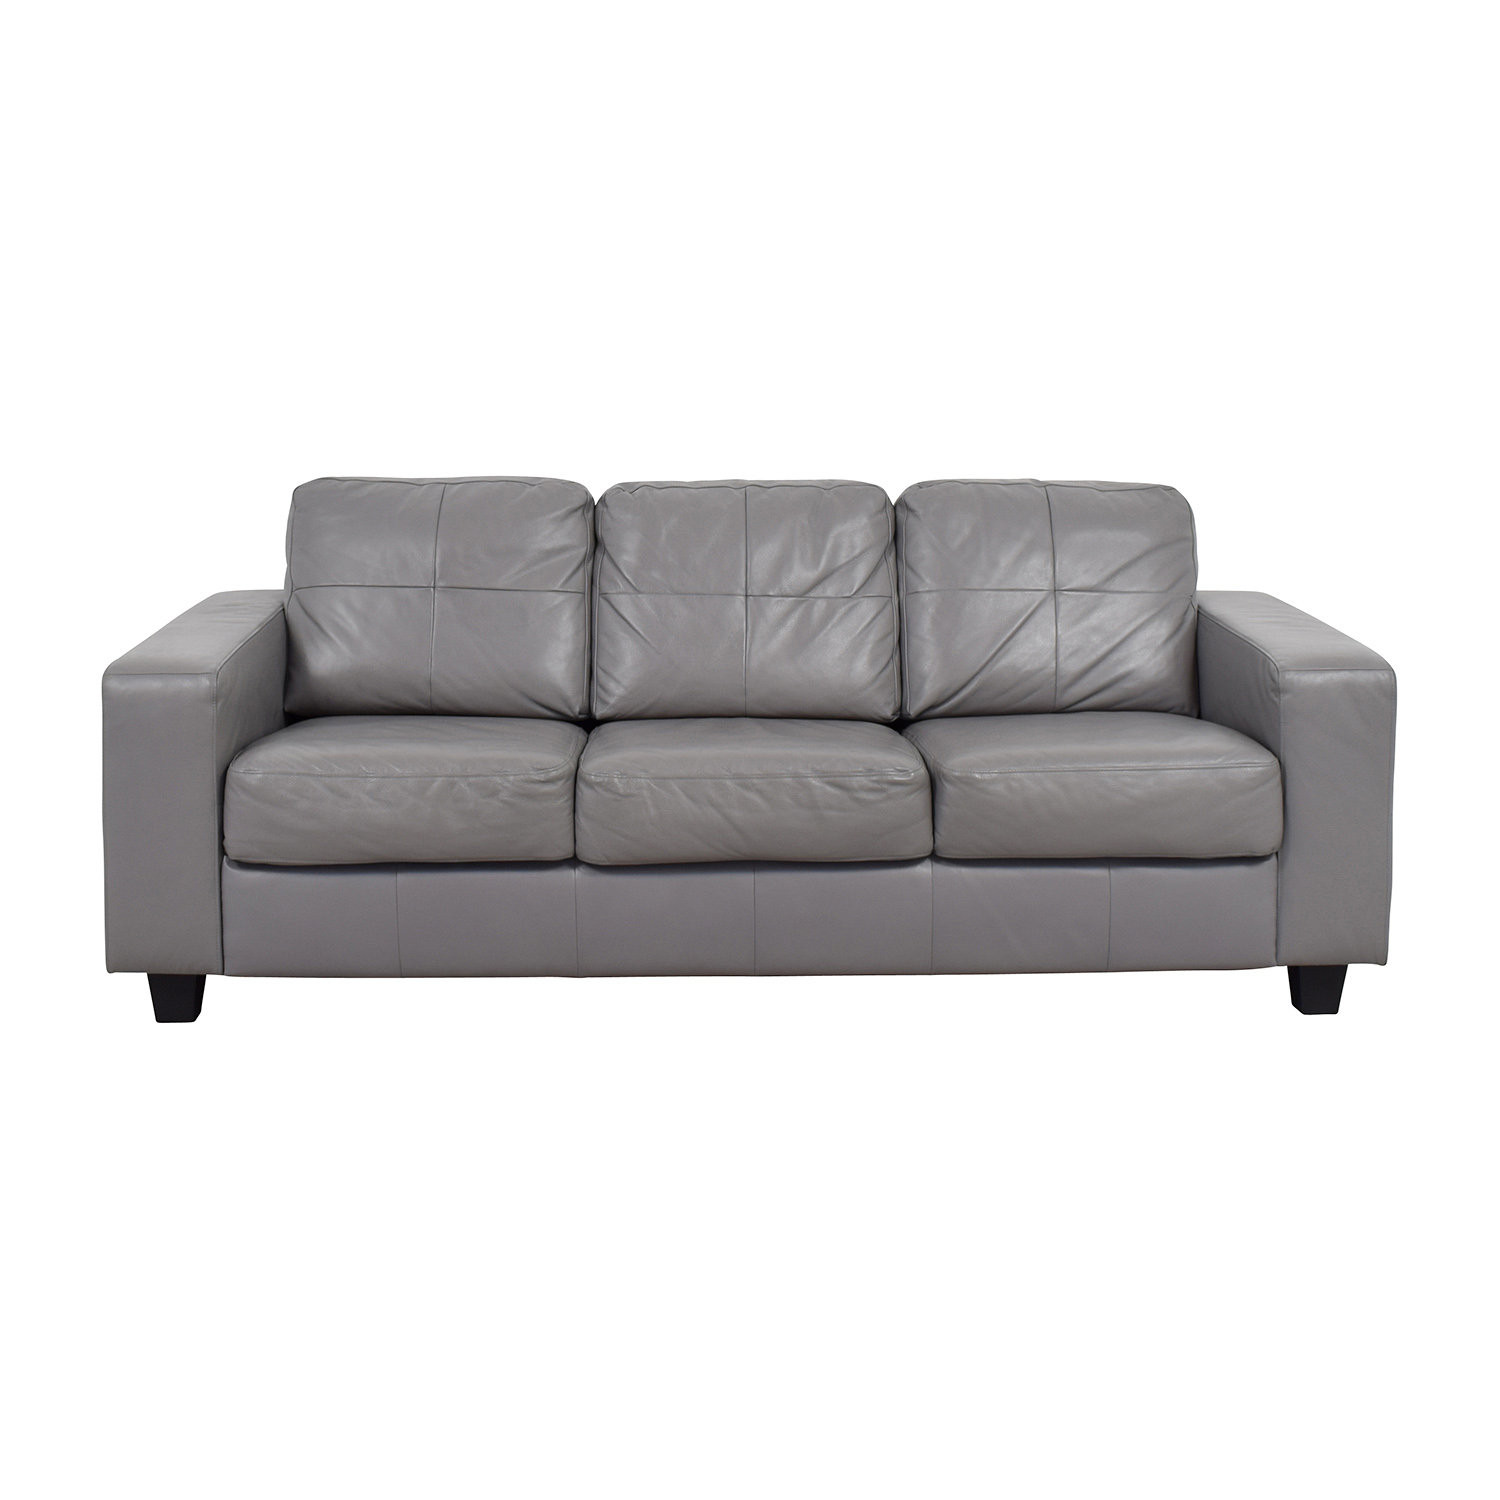 Shop IKEA Skogaby Sofa In Light Grey IKEA ...